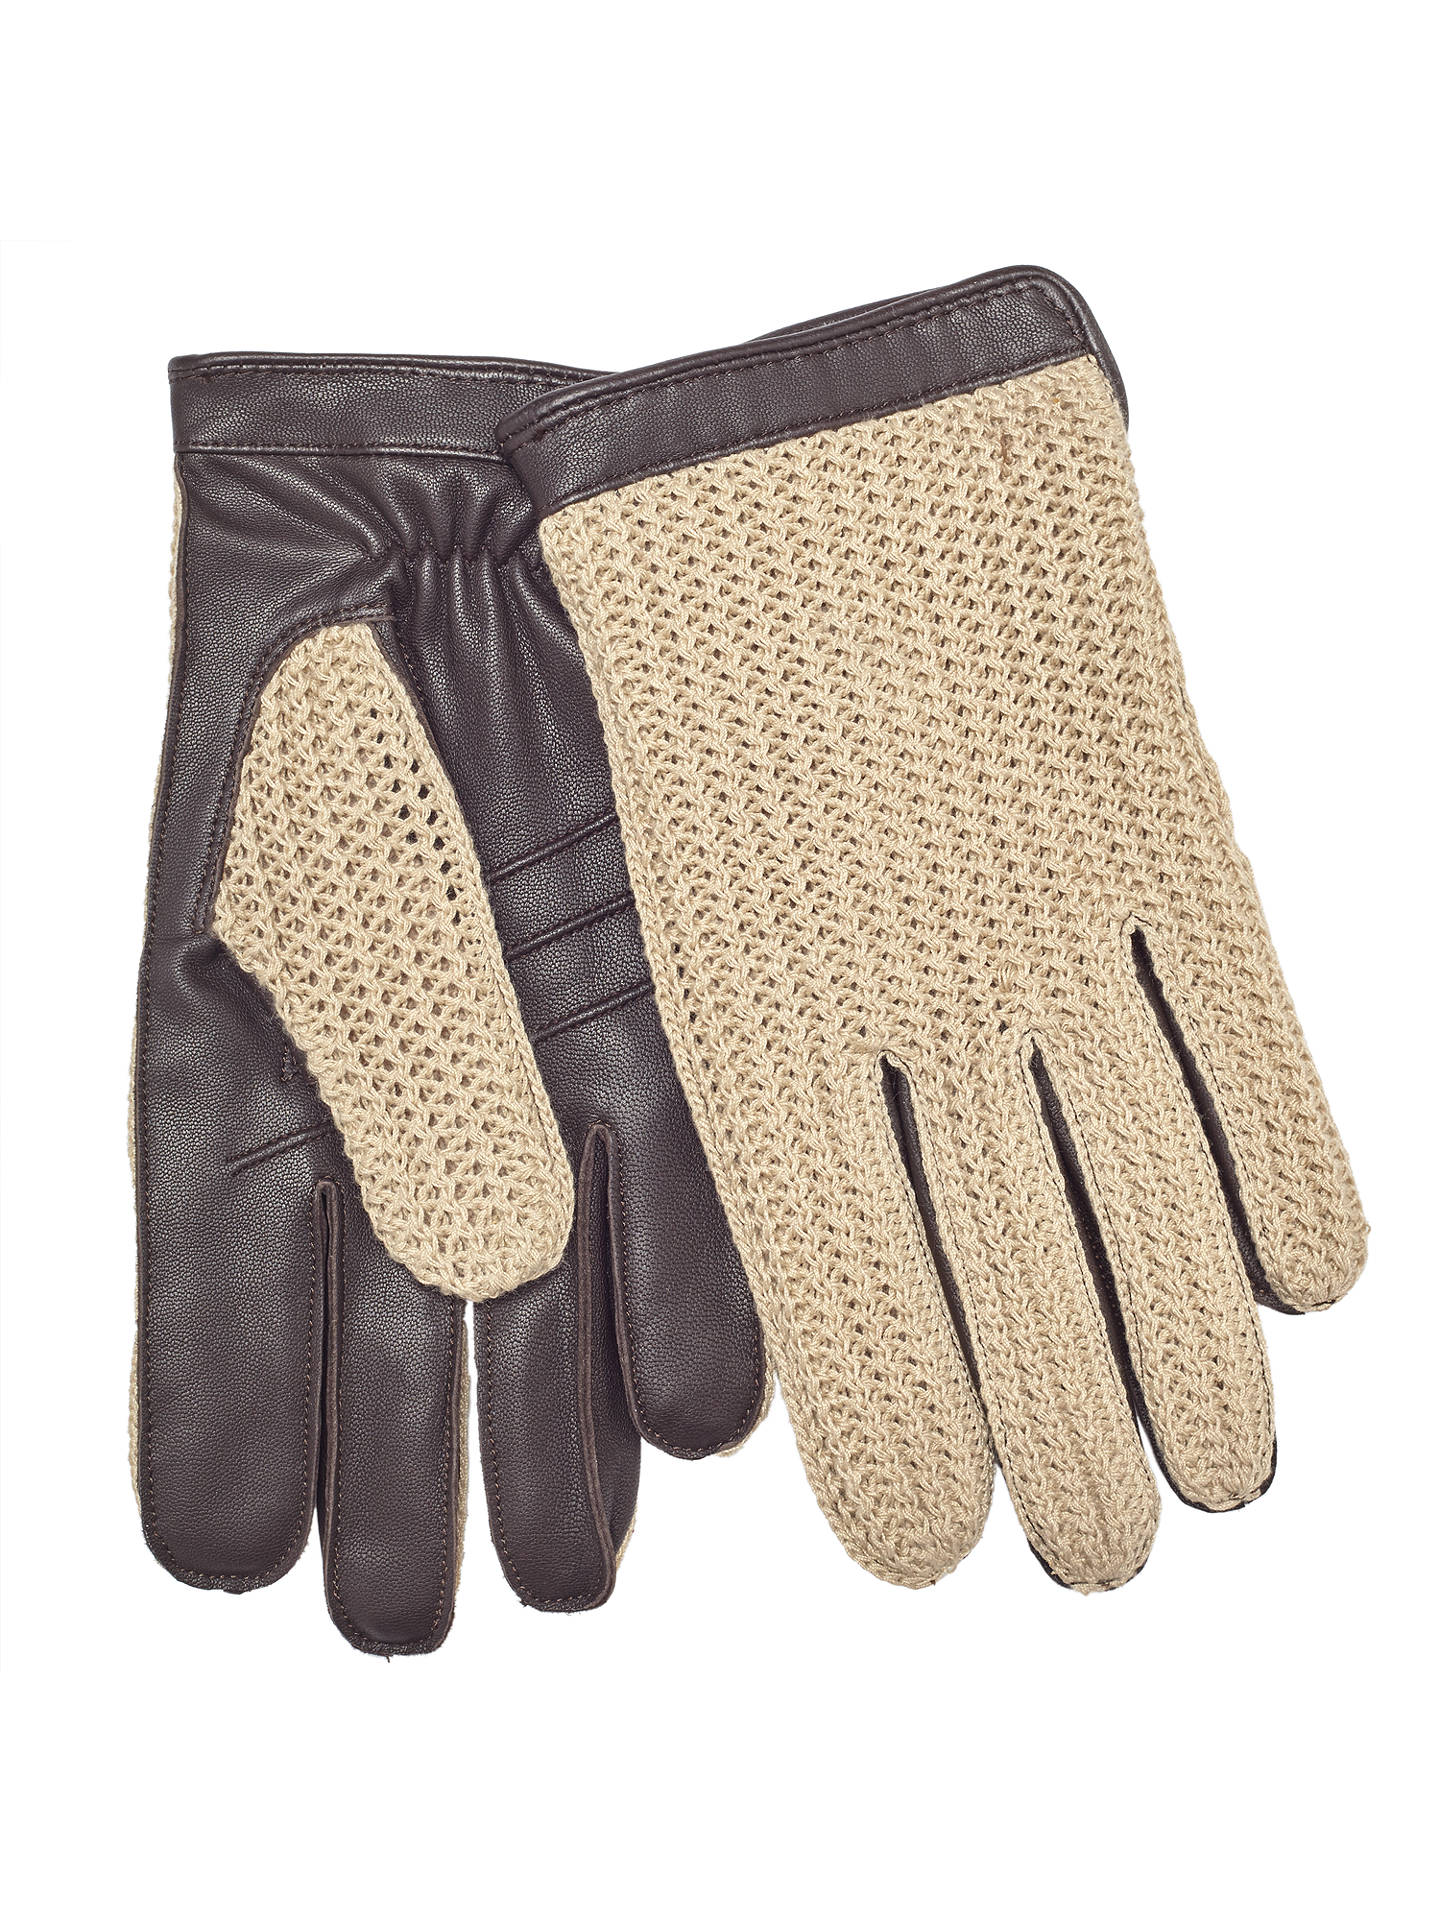 BuyJohn Lewis & Partners Crochet Back Wool Lined Leather Driving Gloves, Brown, M Online at johnlewis.com